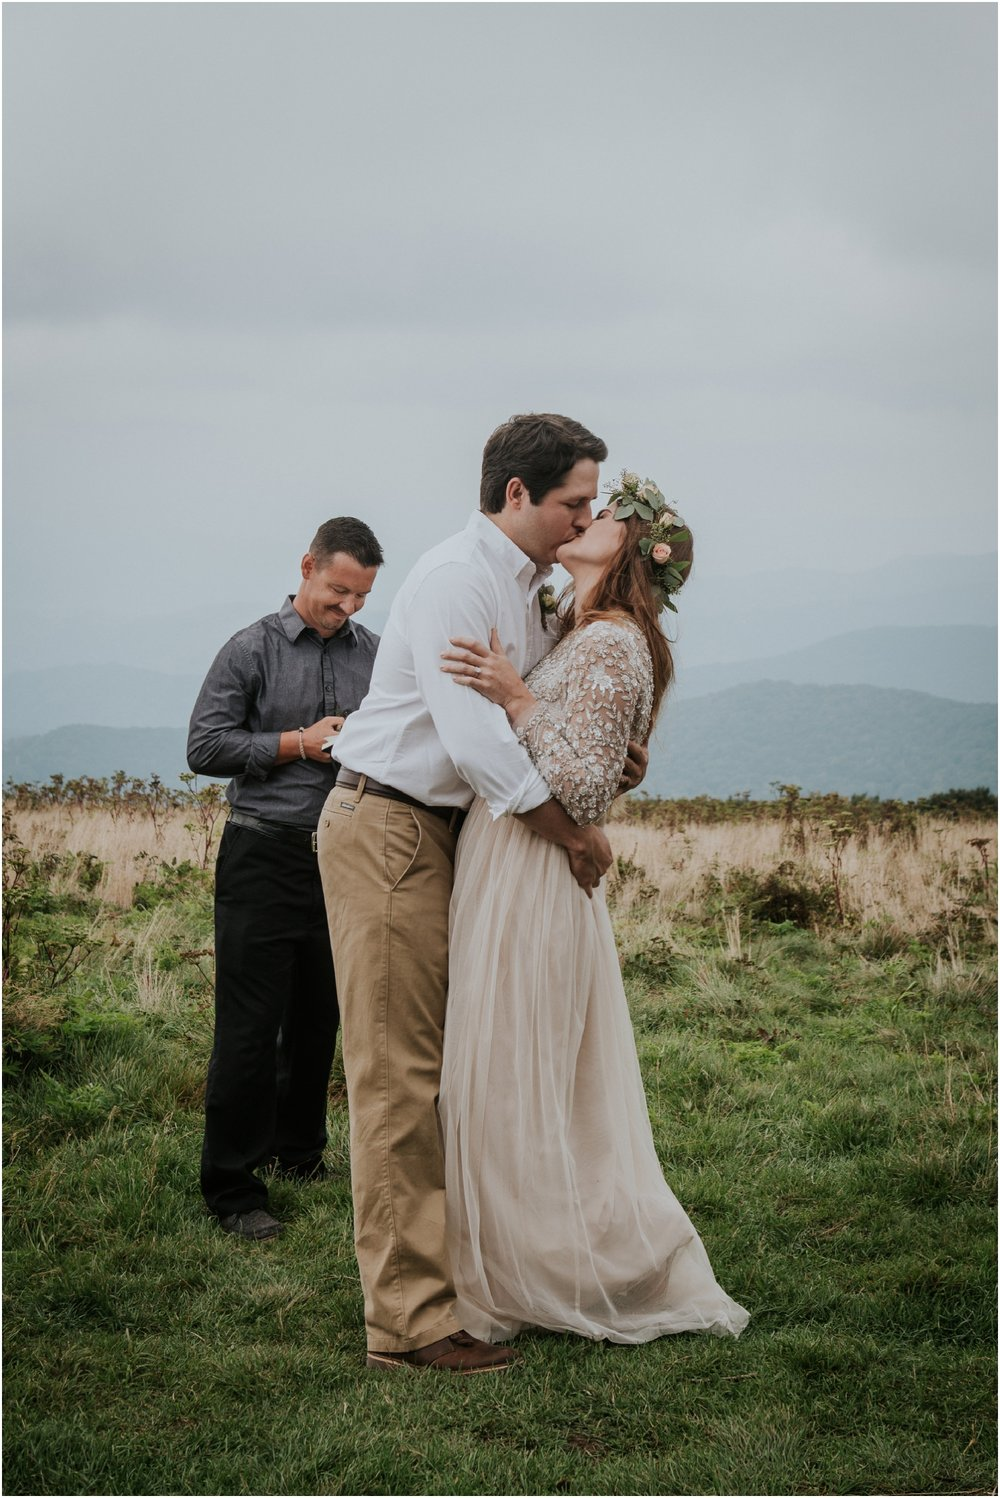 roan-mountain-tennessee-katy-sergent-photography-northeast-tn-elopement-intimate-wedding-engagement-session-photographer-adventurous-outdoors-couples_0025.jpg